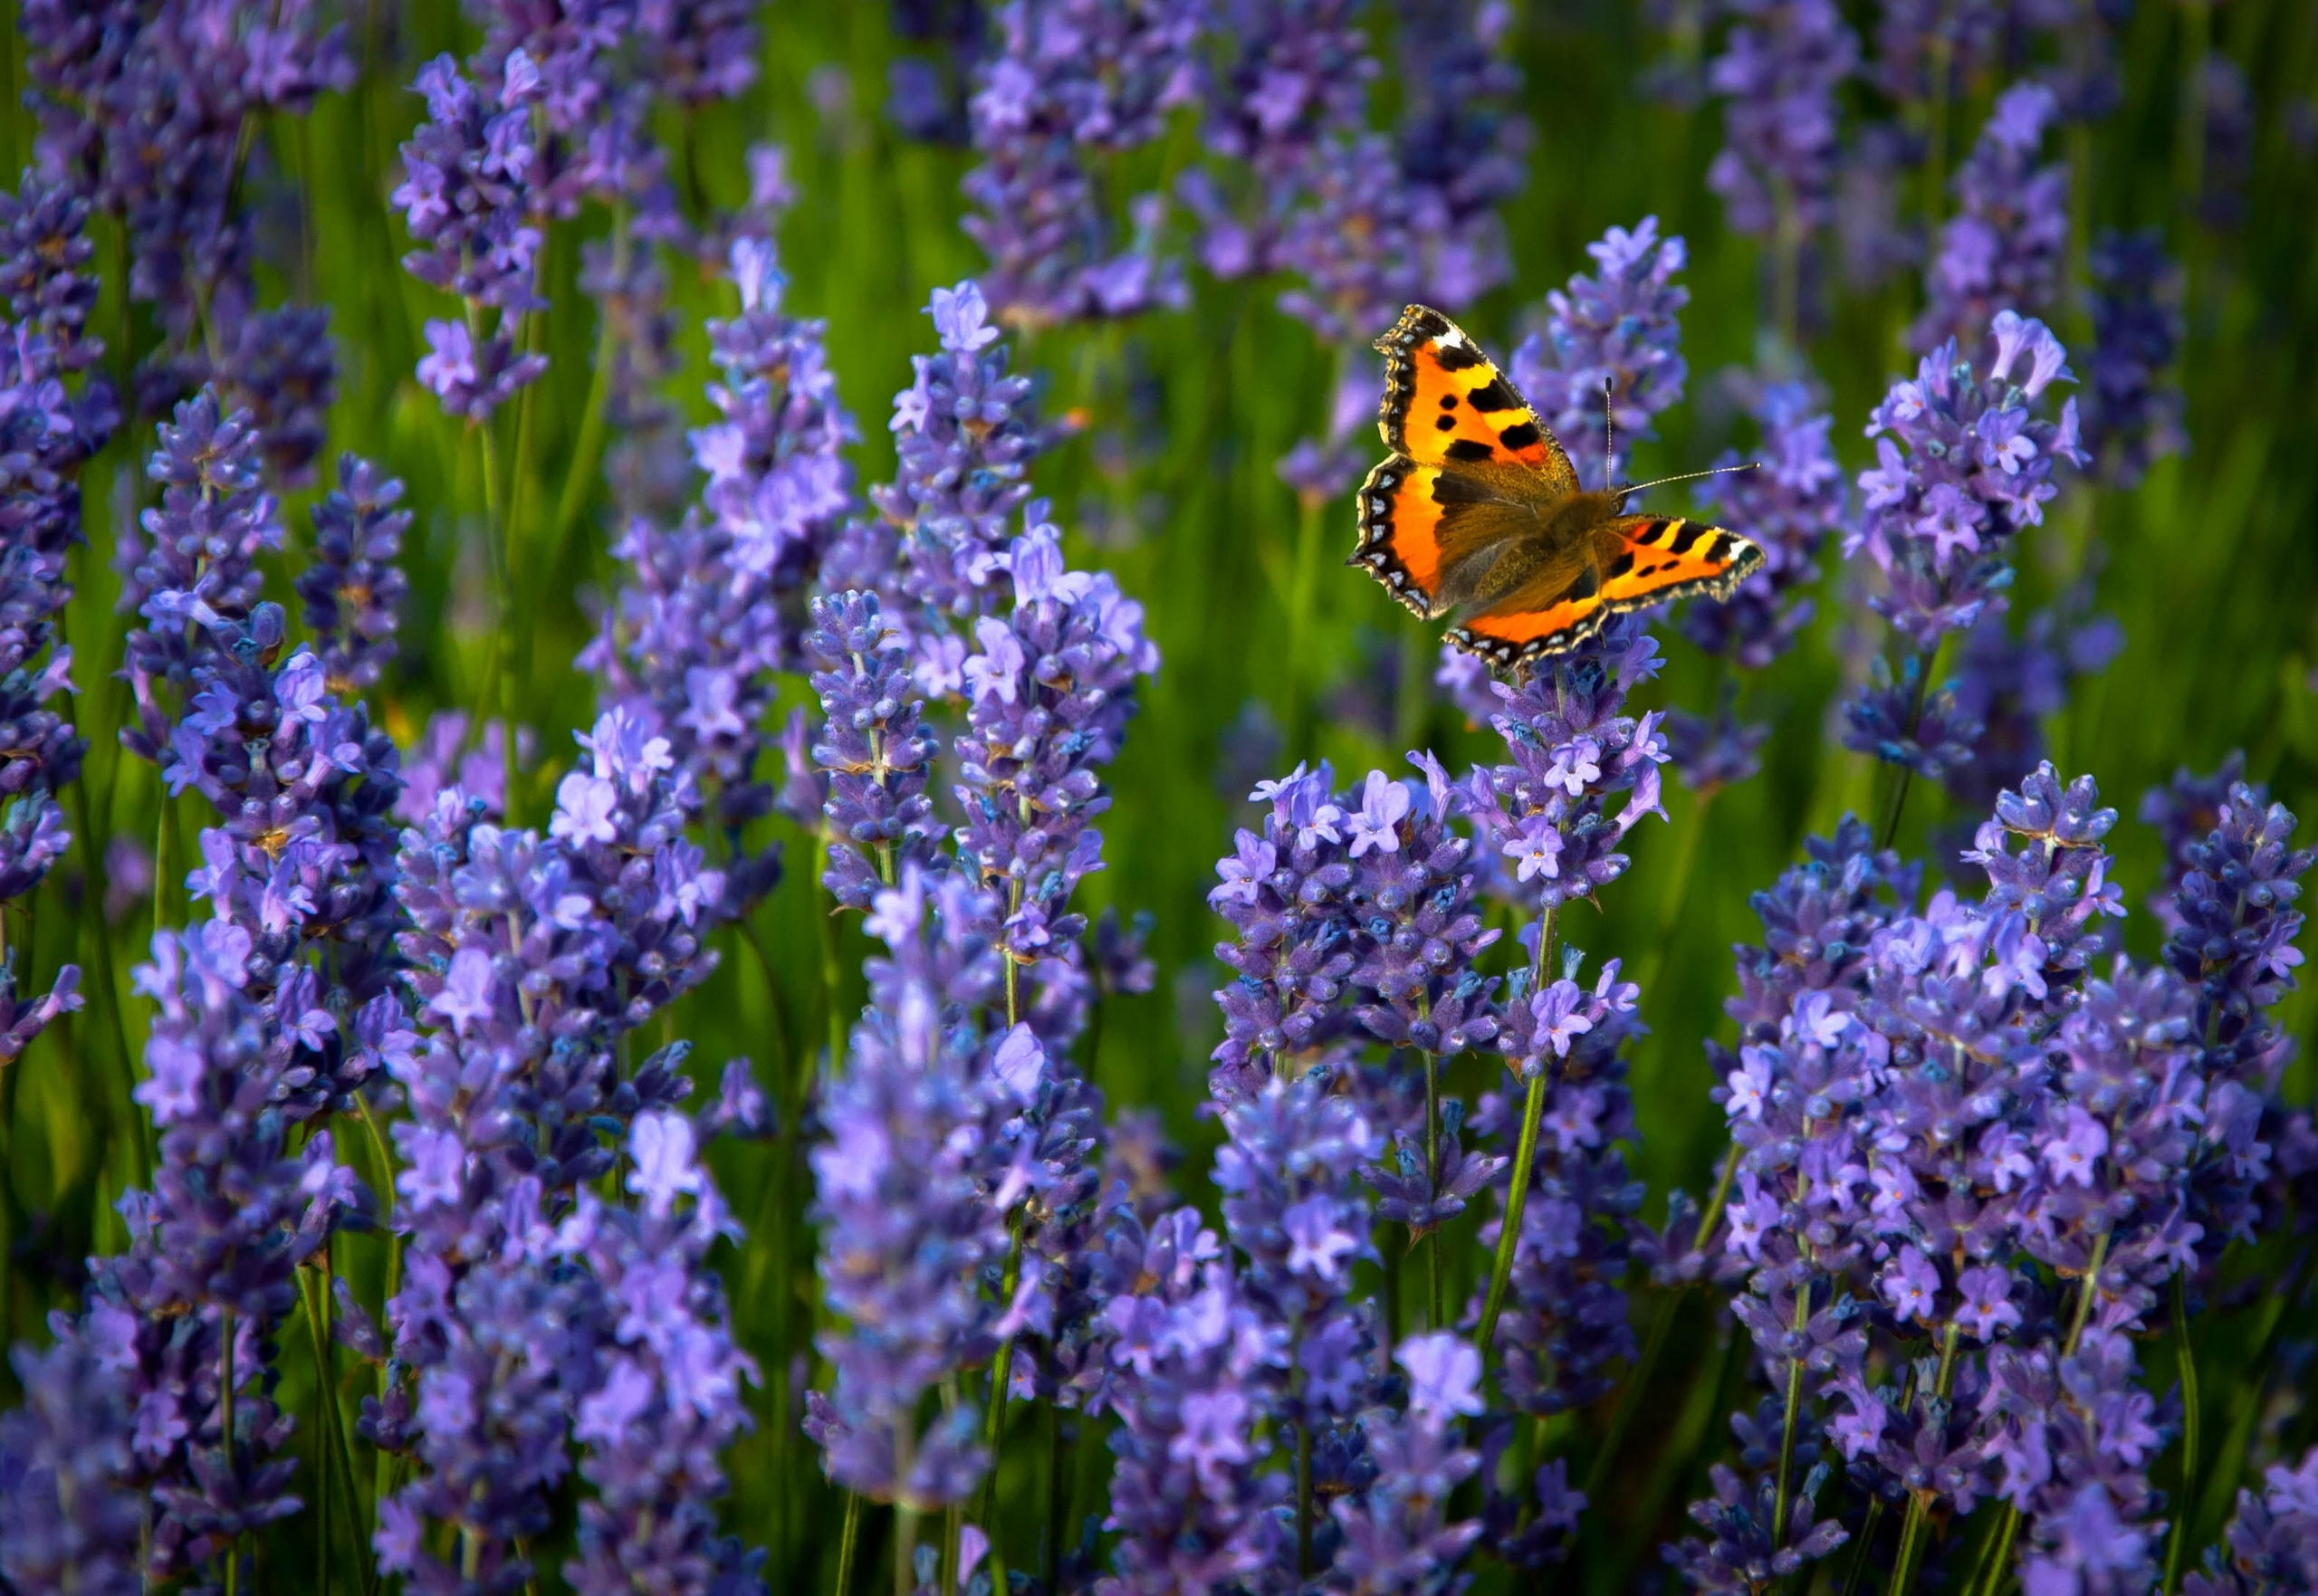 Ordinary, Hives, Lavender, Butterfly Wallpapers Hd - Butterflies In Lavender Fields , HD Wallpaper & Backgrounds